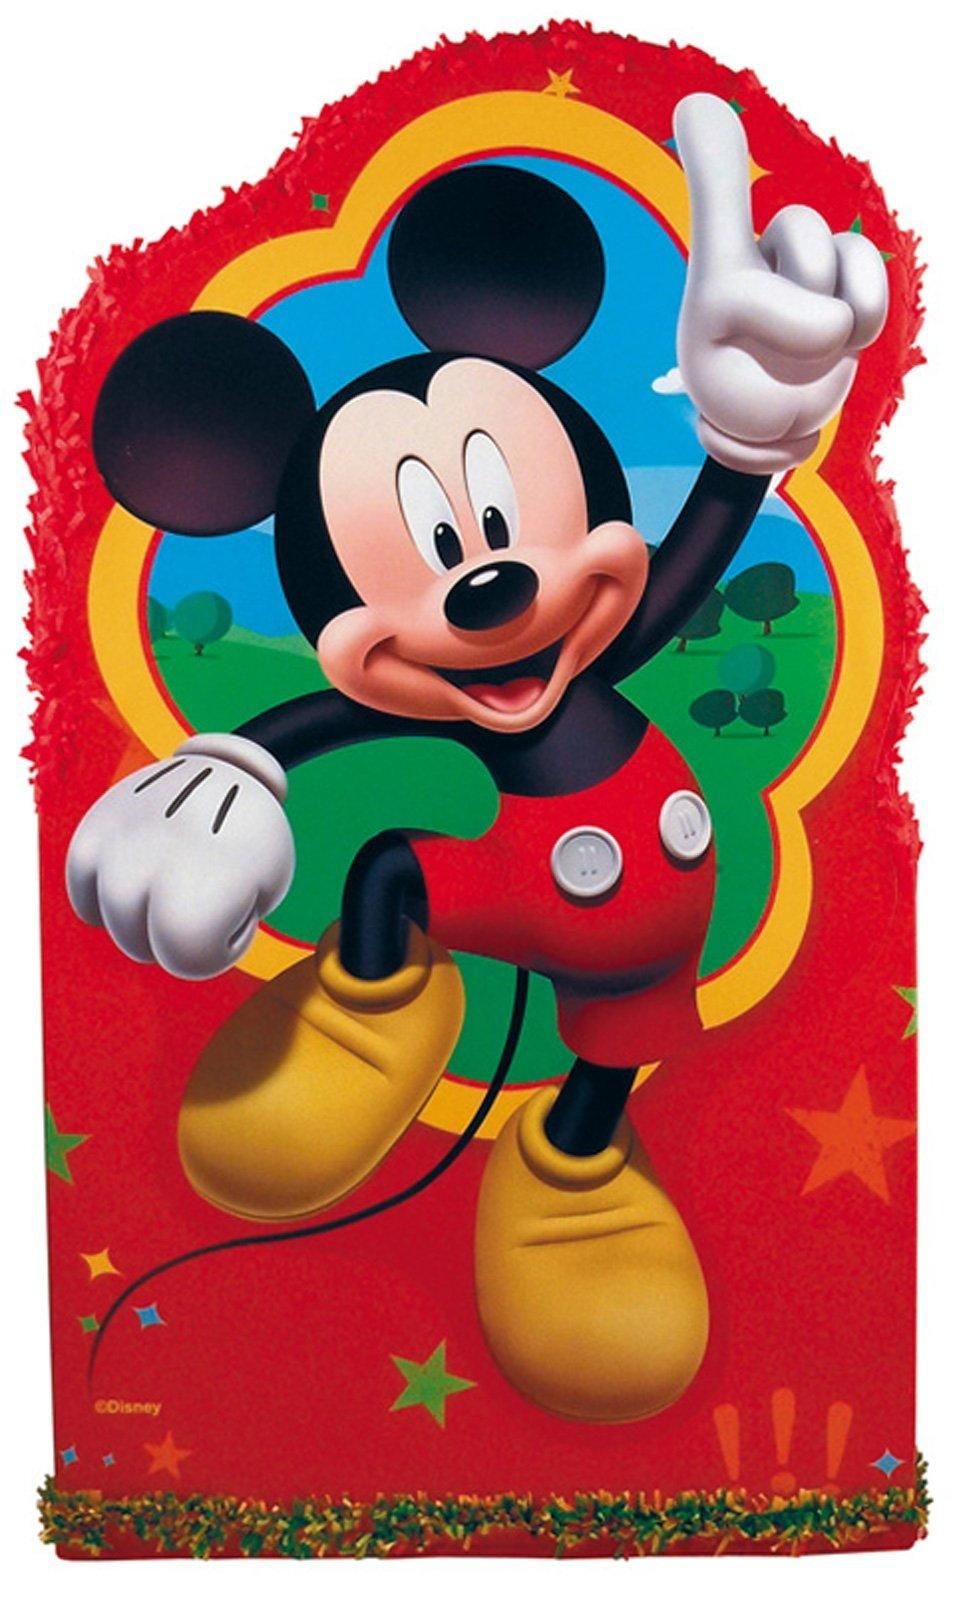 Maxi Poster 61cm x 91.5cm new and sealed Mickey Mouse Red